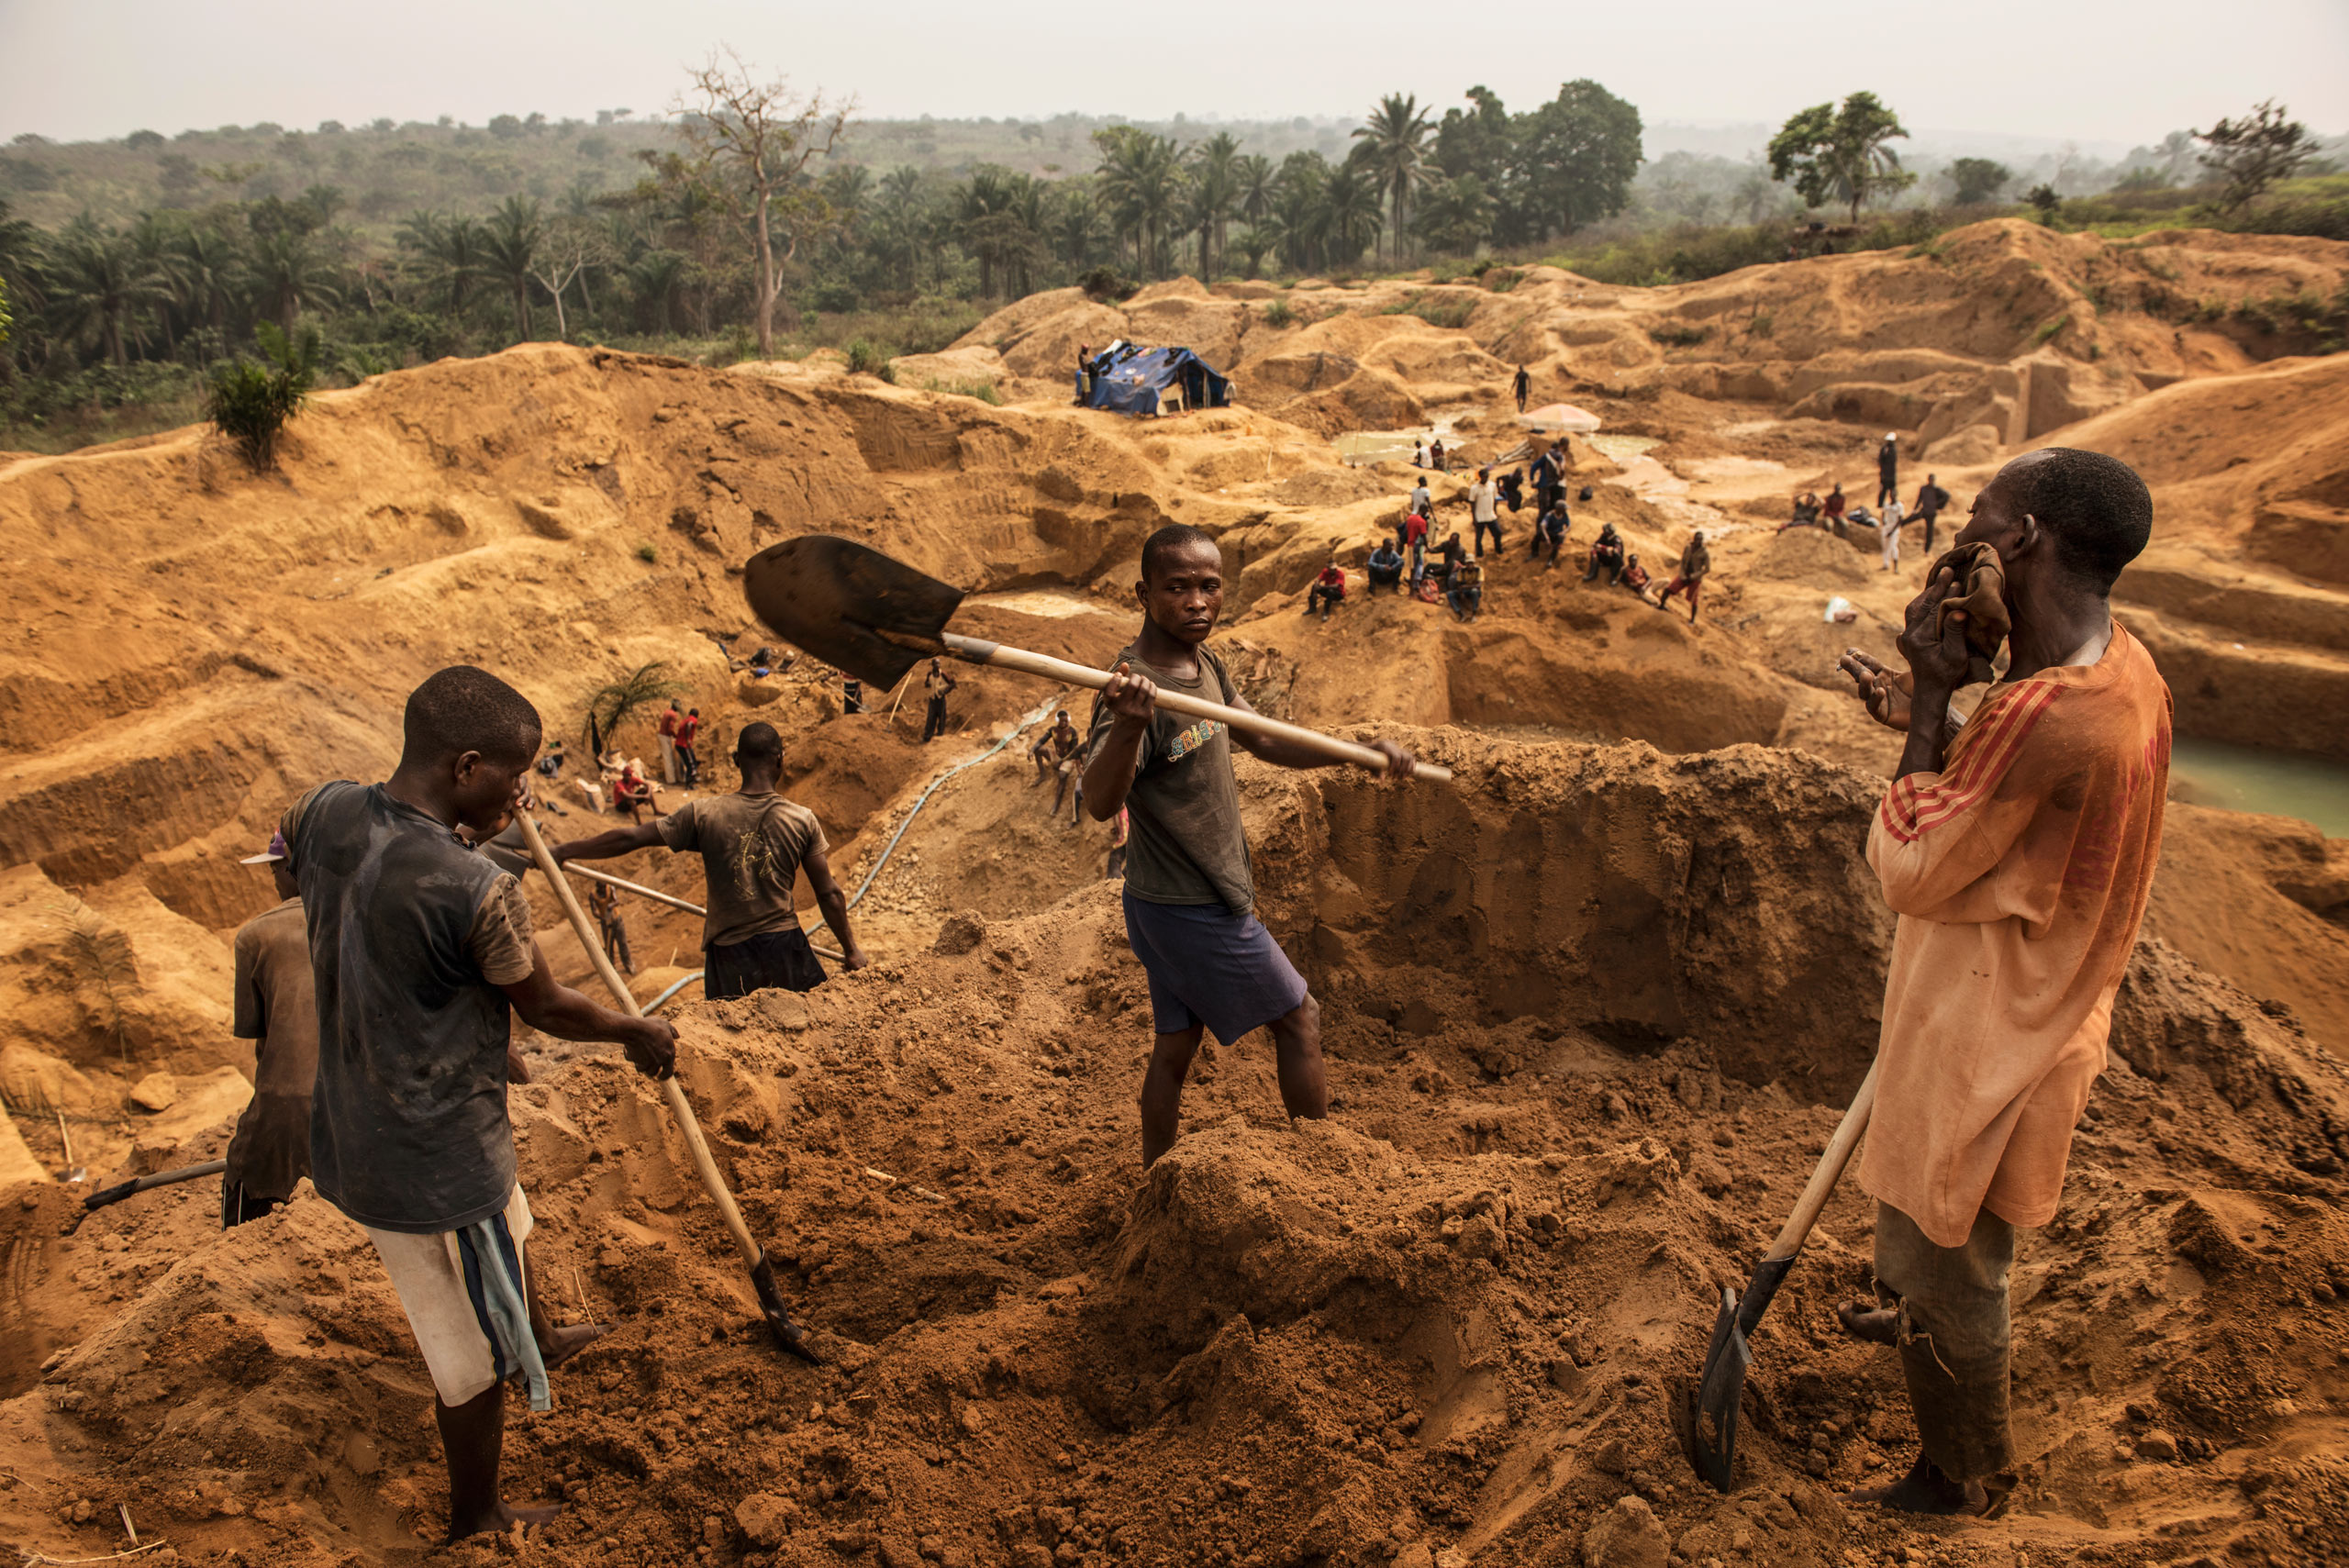 TIME LightBox: Inside the Democratic Republic of Congo's Diamond MinesCongolese miners                               working one of                               the thousands of                               artisanal mines                               that cover the                               southwest Democratic Republic of Congo, on Aug. 9, 2015.